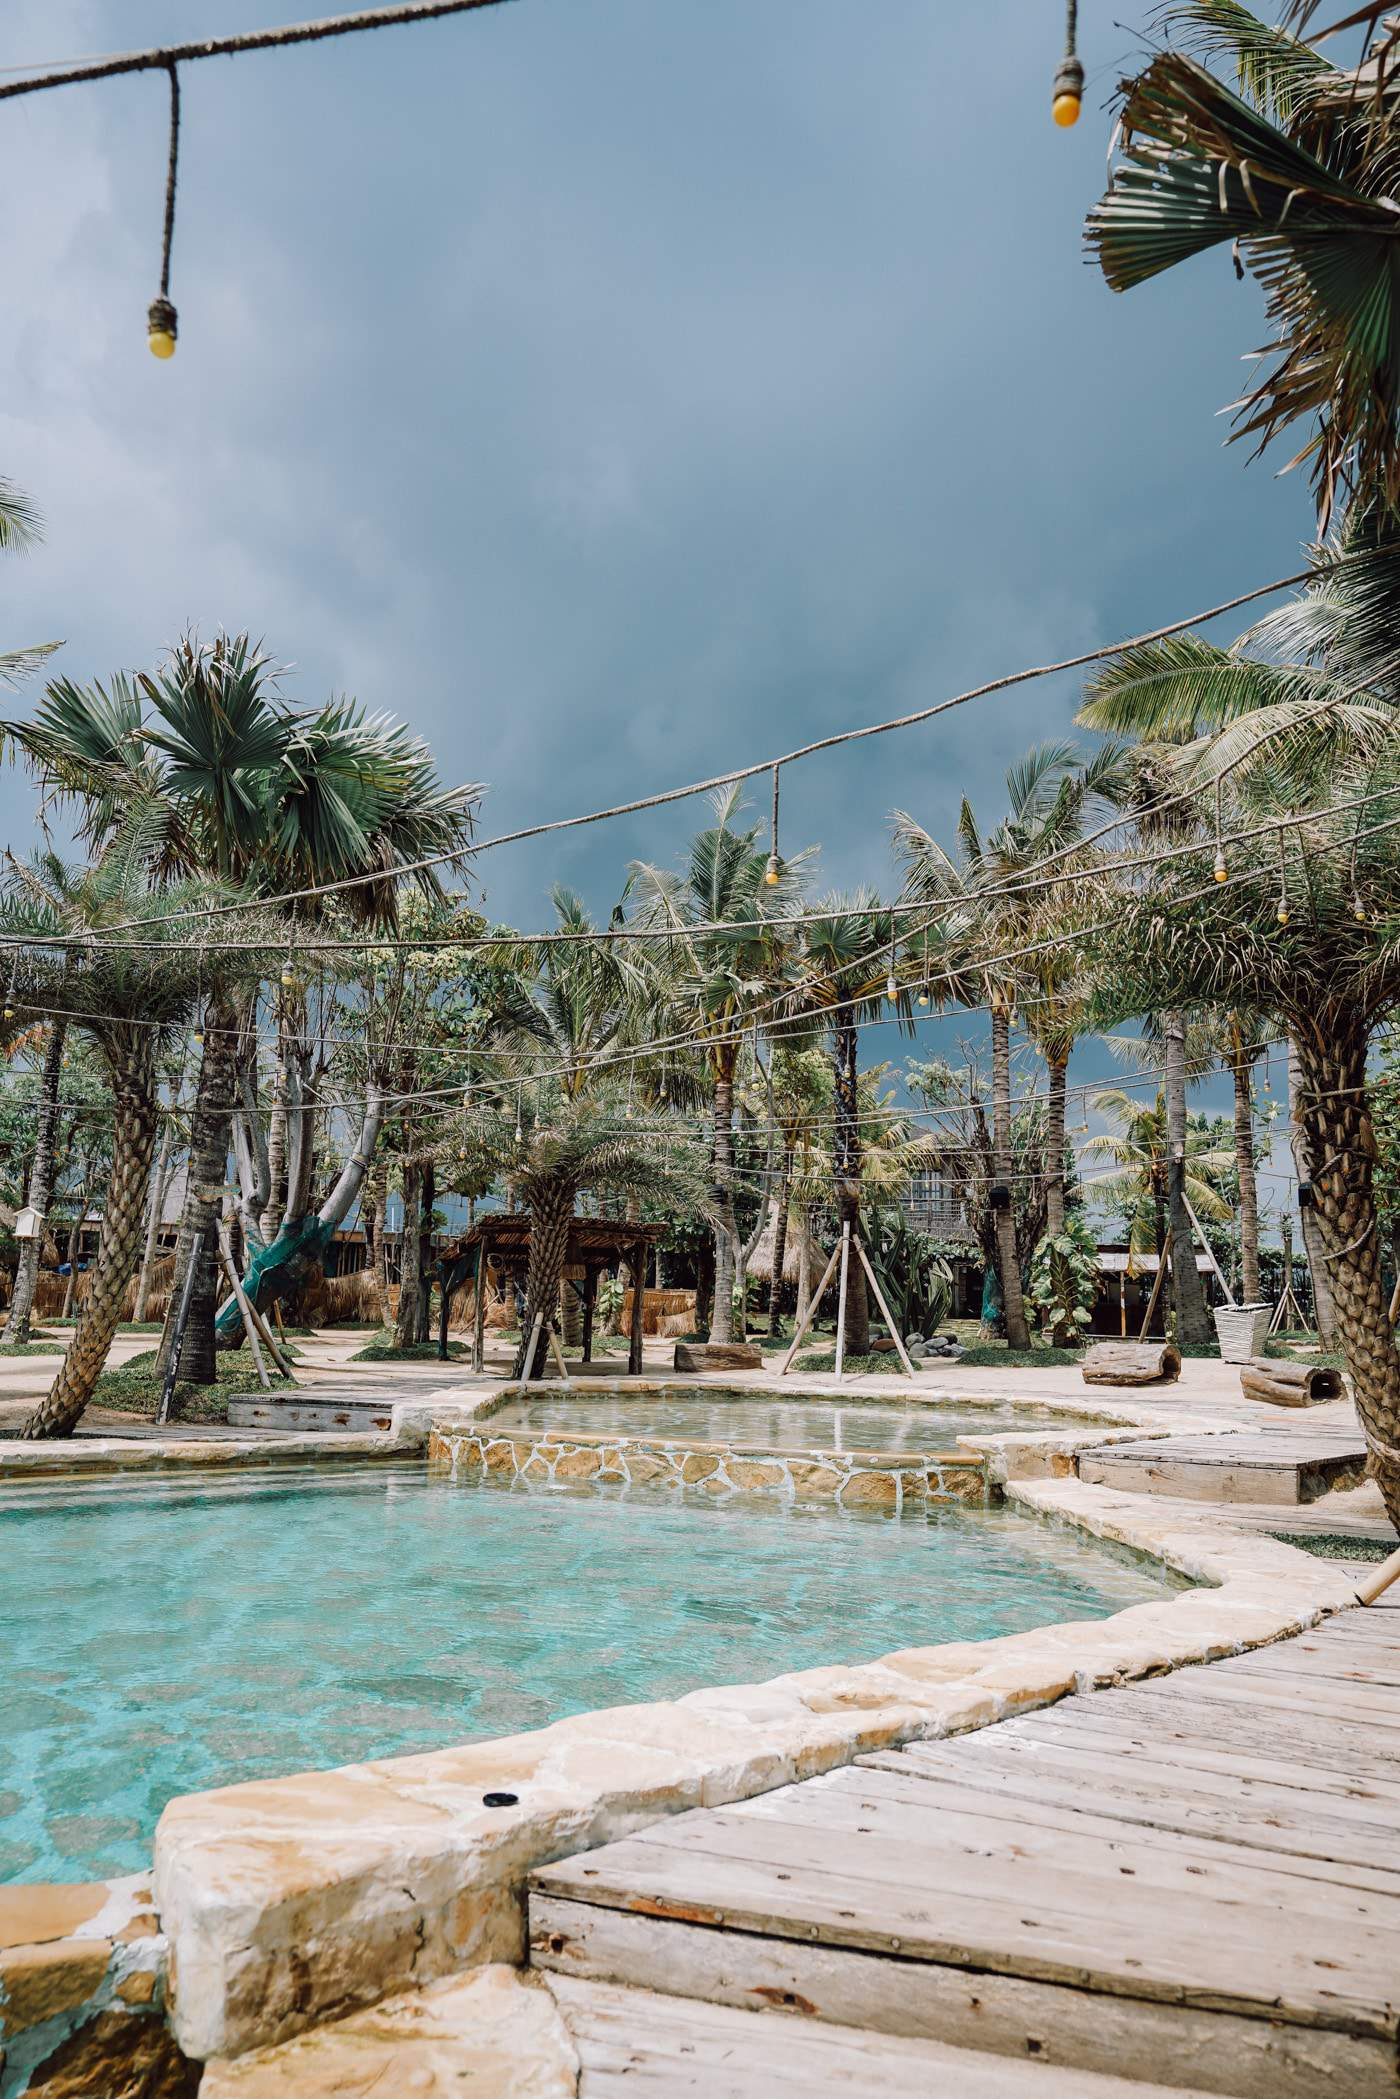 Looking for the best Bali beach clubs? We have you covered! Today, we're giving an honest review of 5 of Bali most notable beach clubs acorss the island. Including La Brisa Beach Club located in Canggu.